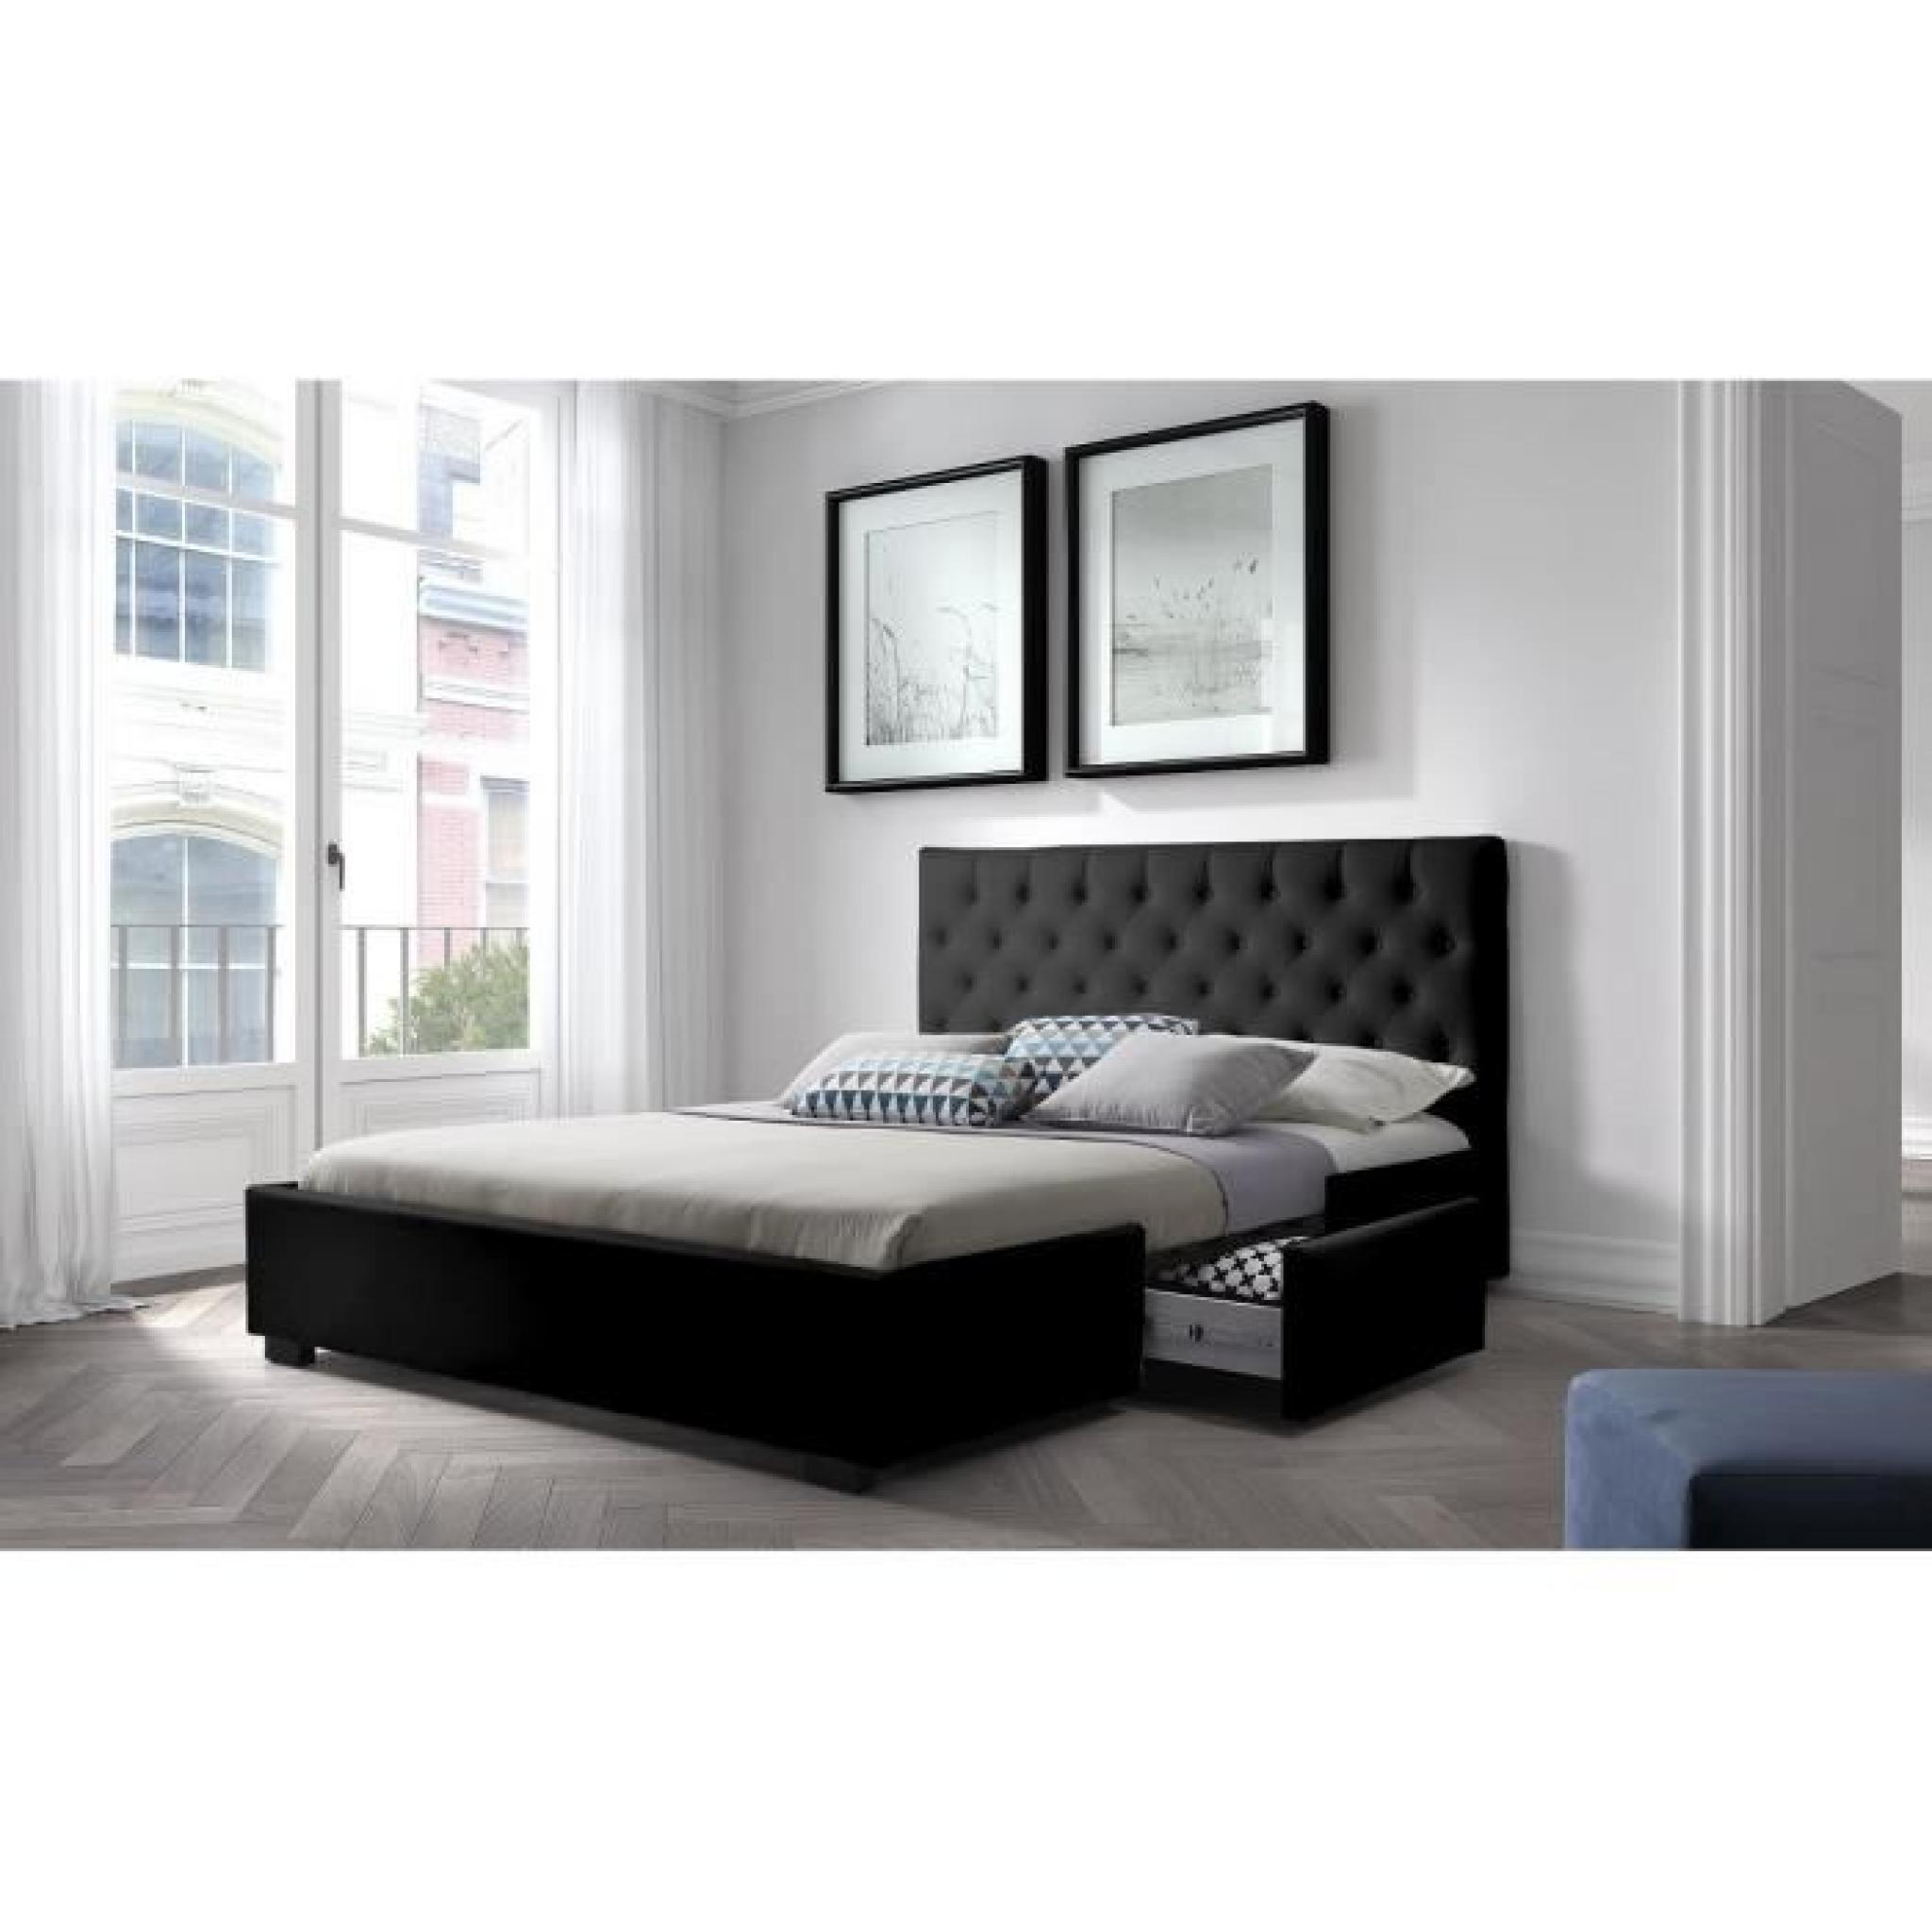 sommier 180x200 pas cher elegant cache sommier en microfibre lavee moji x cm anthracite with. Black Bedroom Furniture Sets. Home Design Ideas